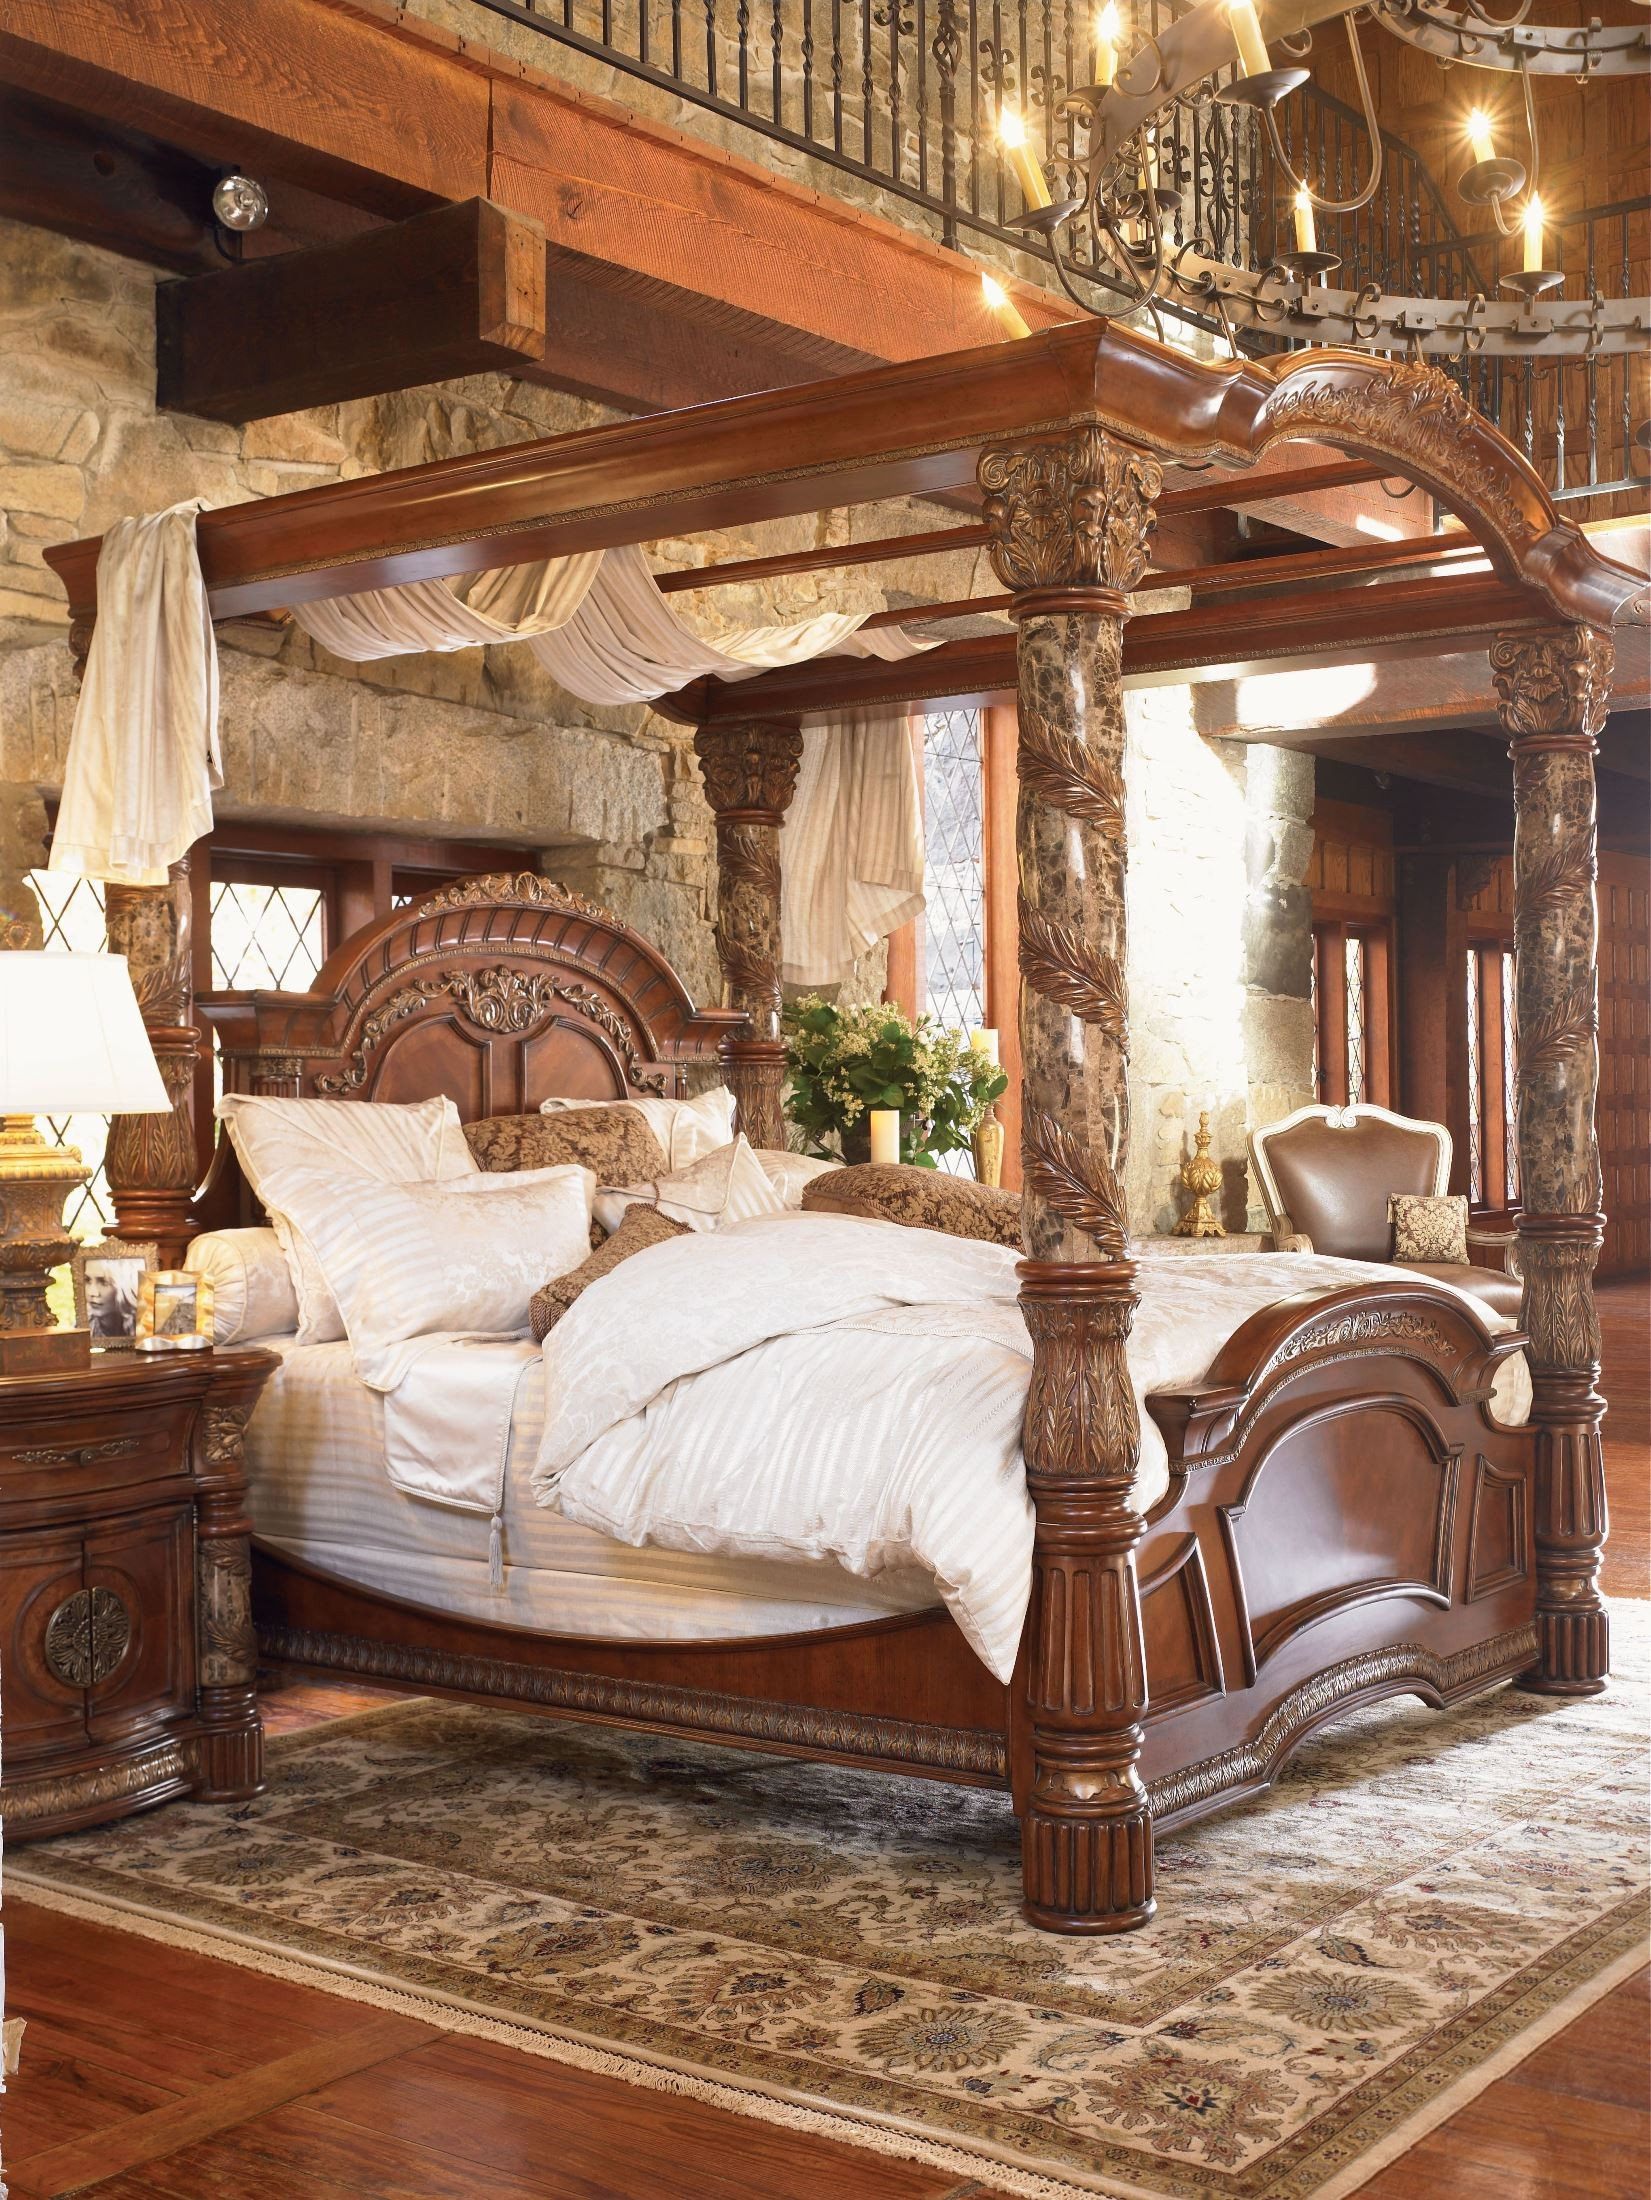 Valencia Carved Wood Traditional Bedroom Furniture Set 209000: Villa Valencia Cal. King Poster Canopy Bed From Aico